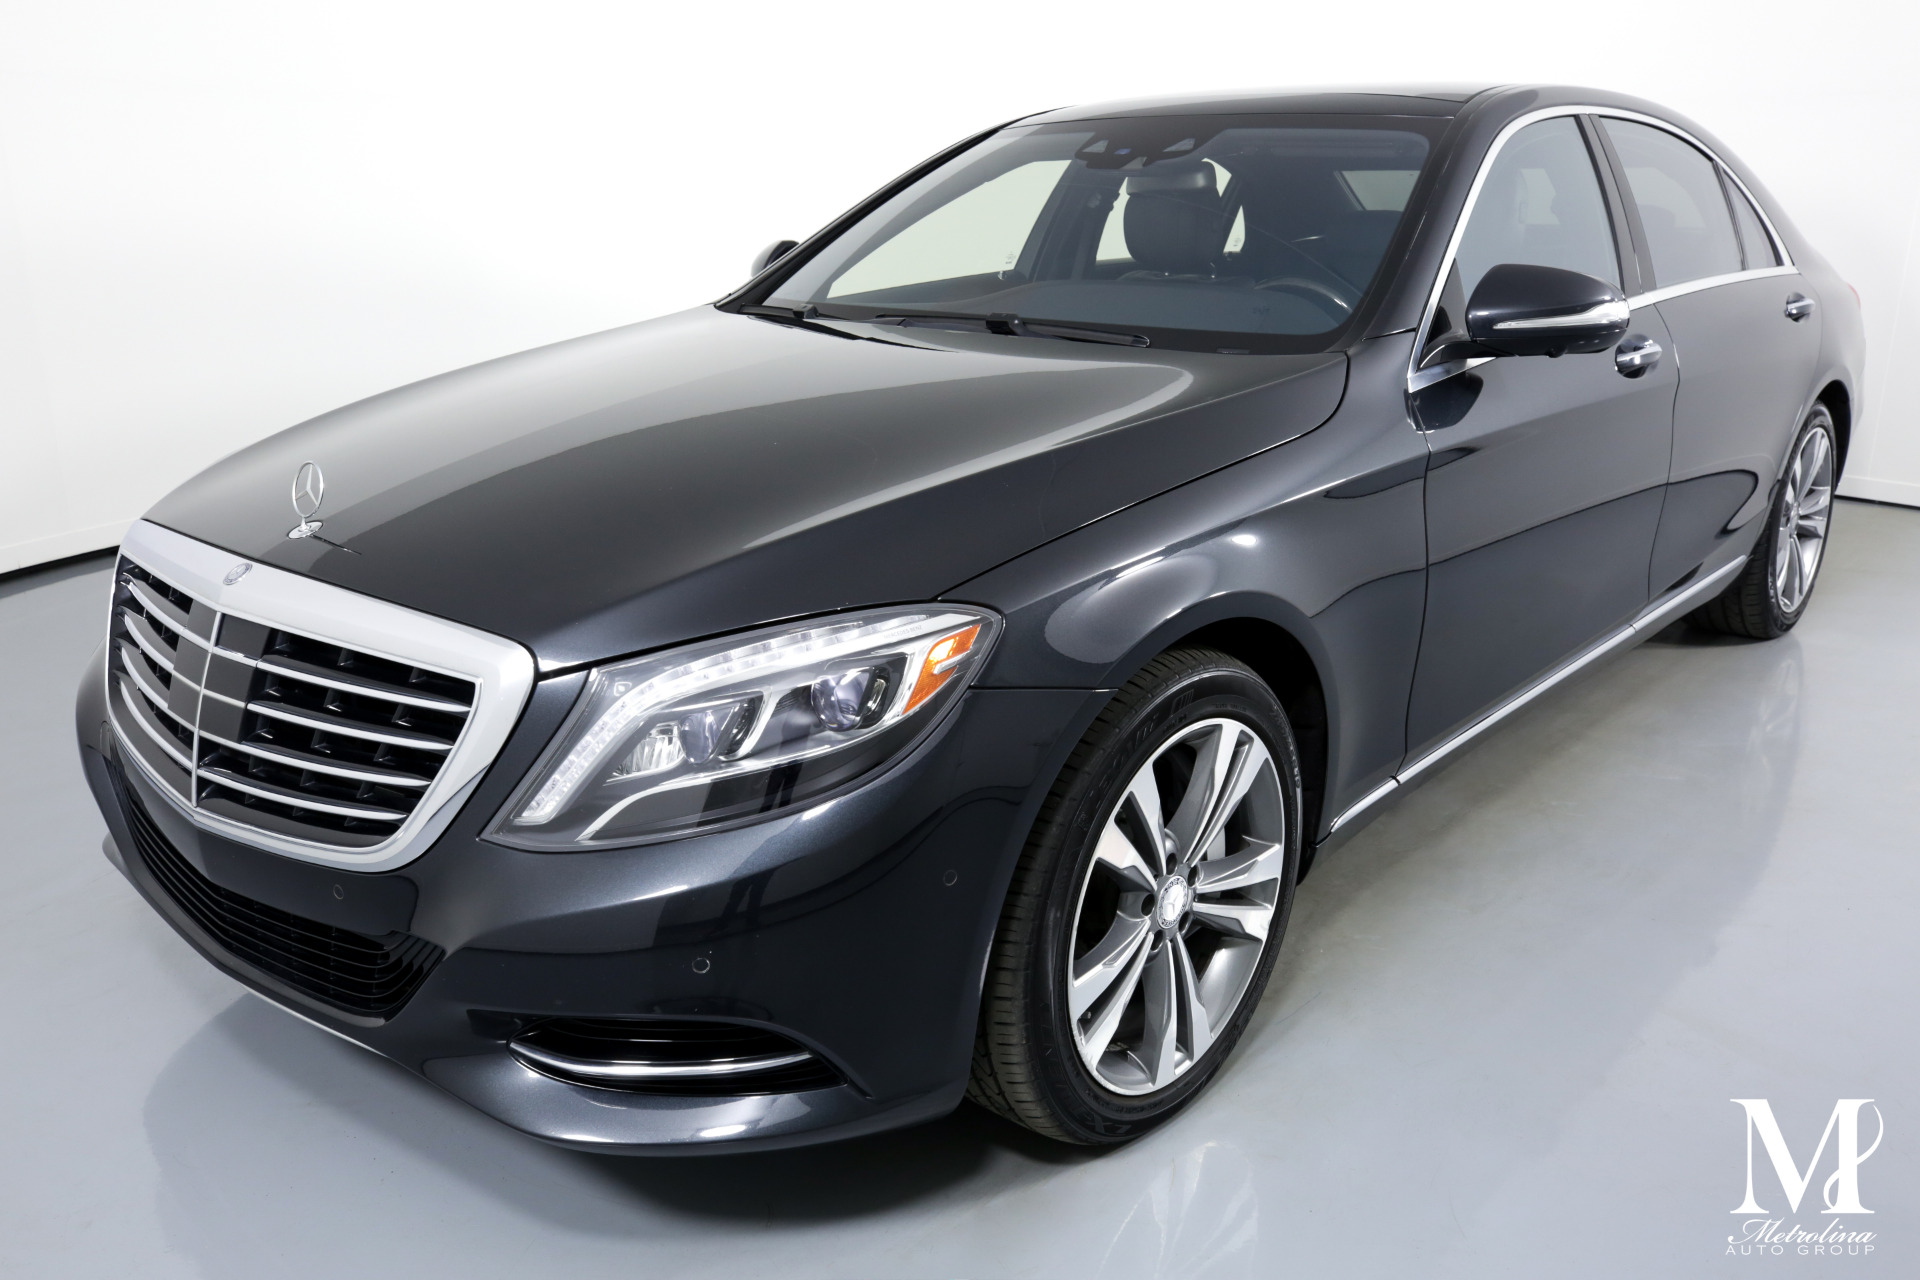 Used 2016 Mercedes-Benz S-Class S 550 4dr Sedan for sale $43,996 at Metrolina Auto Group in Charlotte NC 28217 - 4